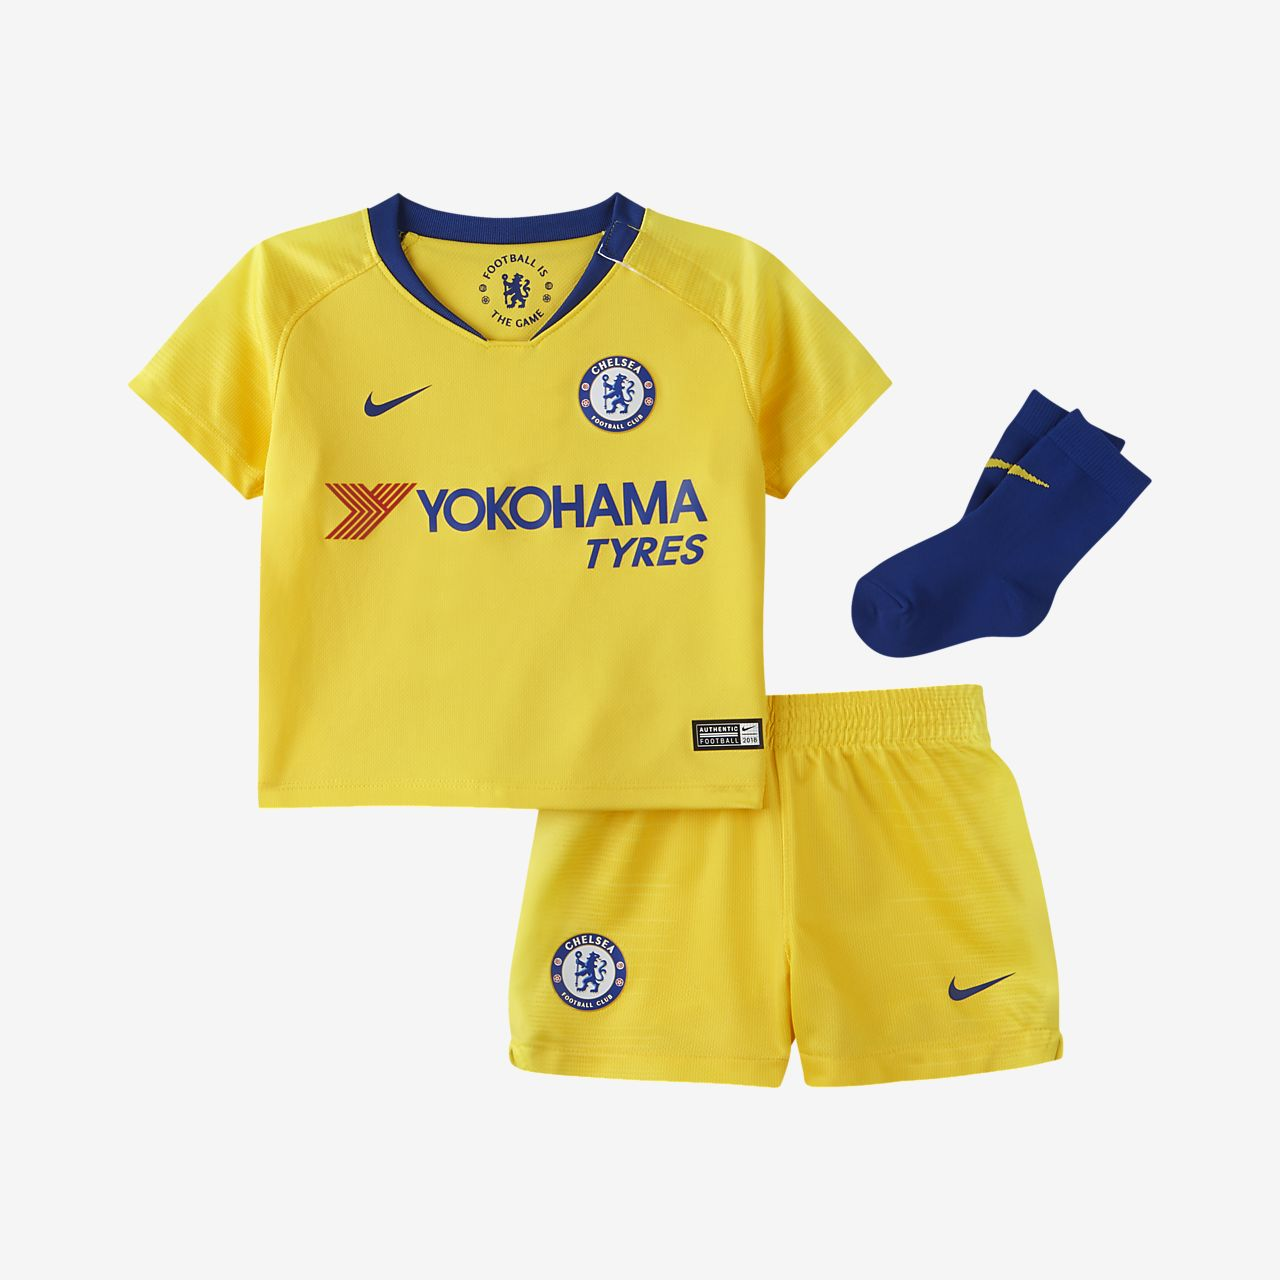 0bdd4a470 2018 19 Chelsea FC Stadium Away Baby   Toddler Football Kit. Nike.com ZA